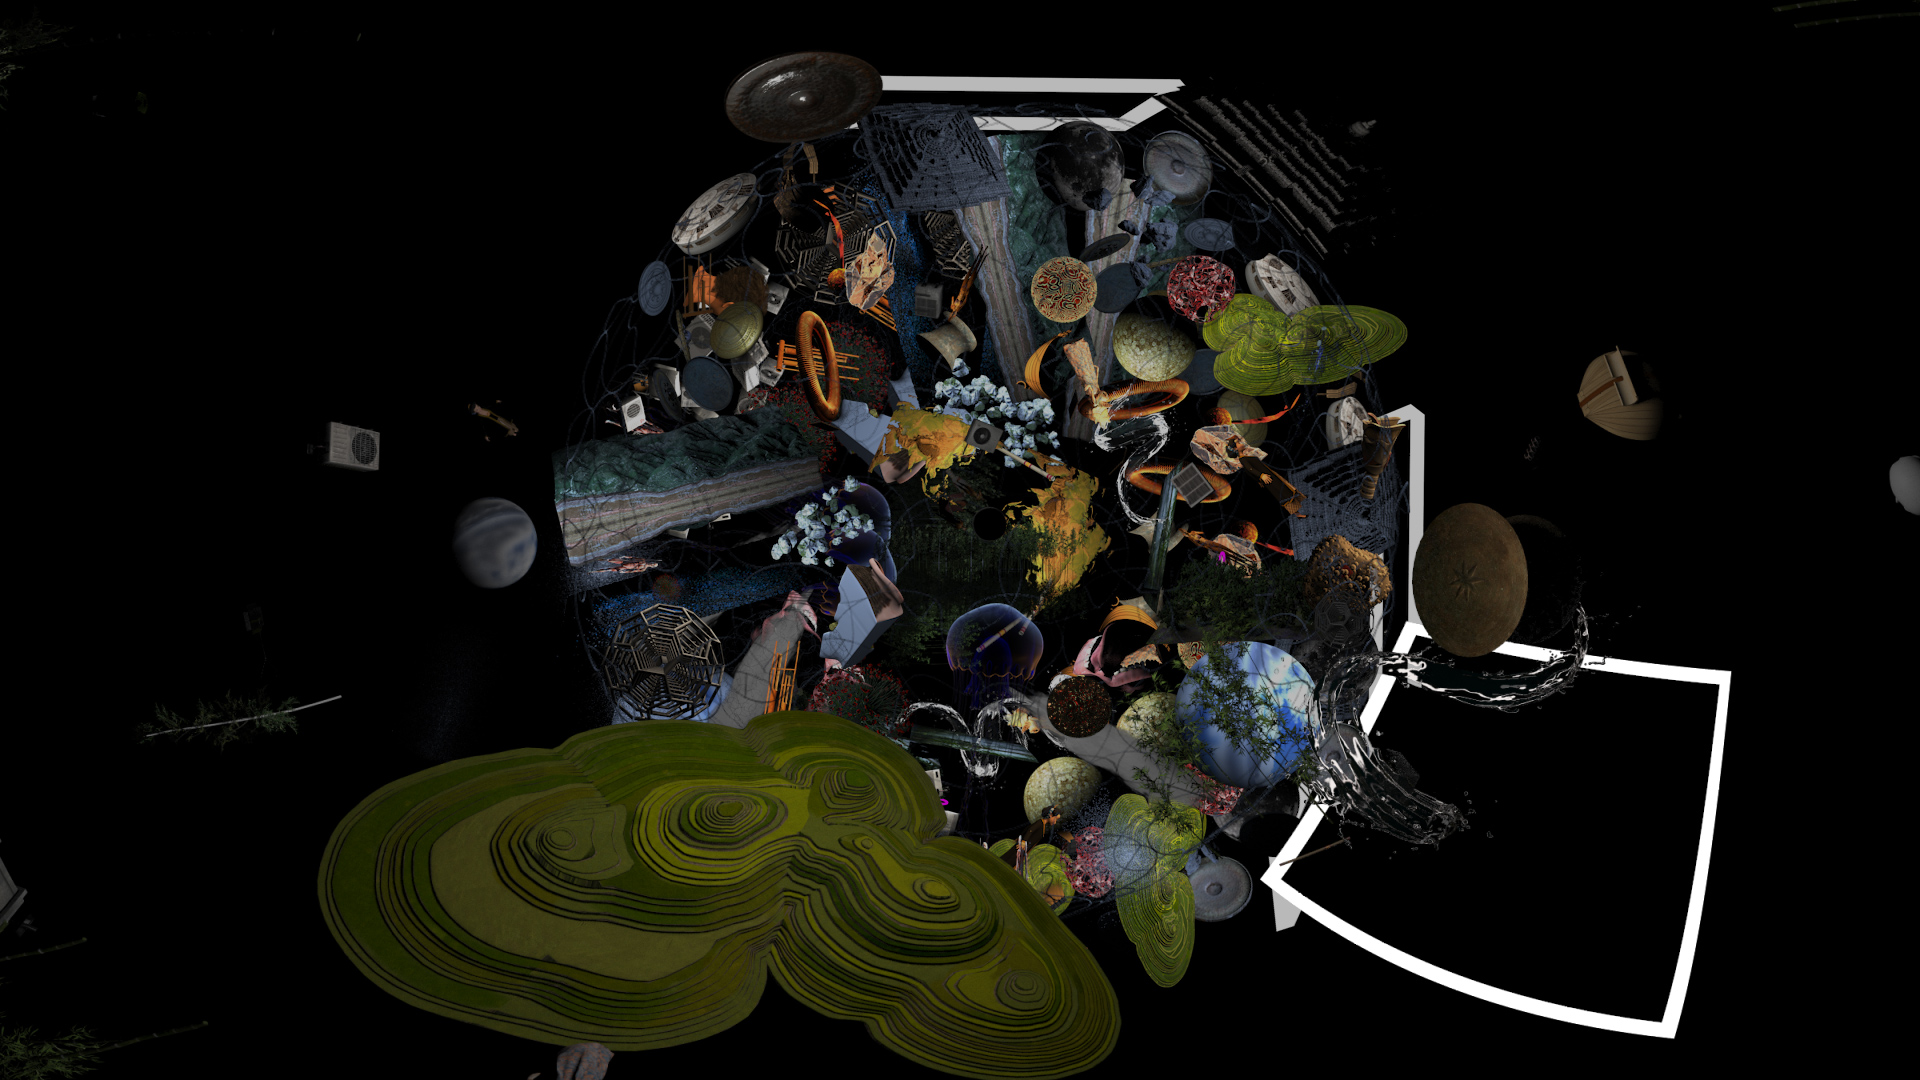 R for Resonance, Installation with VR Video 360 degrees, single channel video, 6 channel sound_1